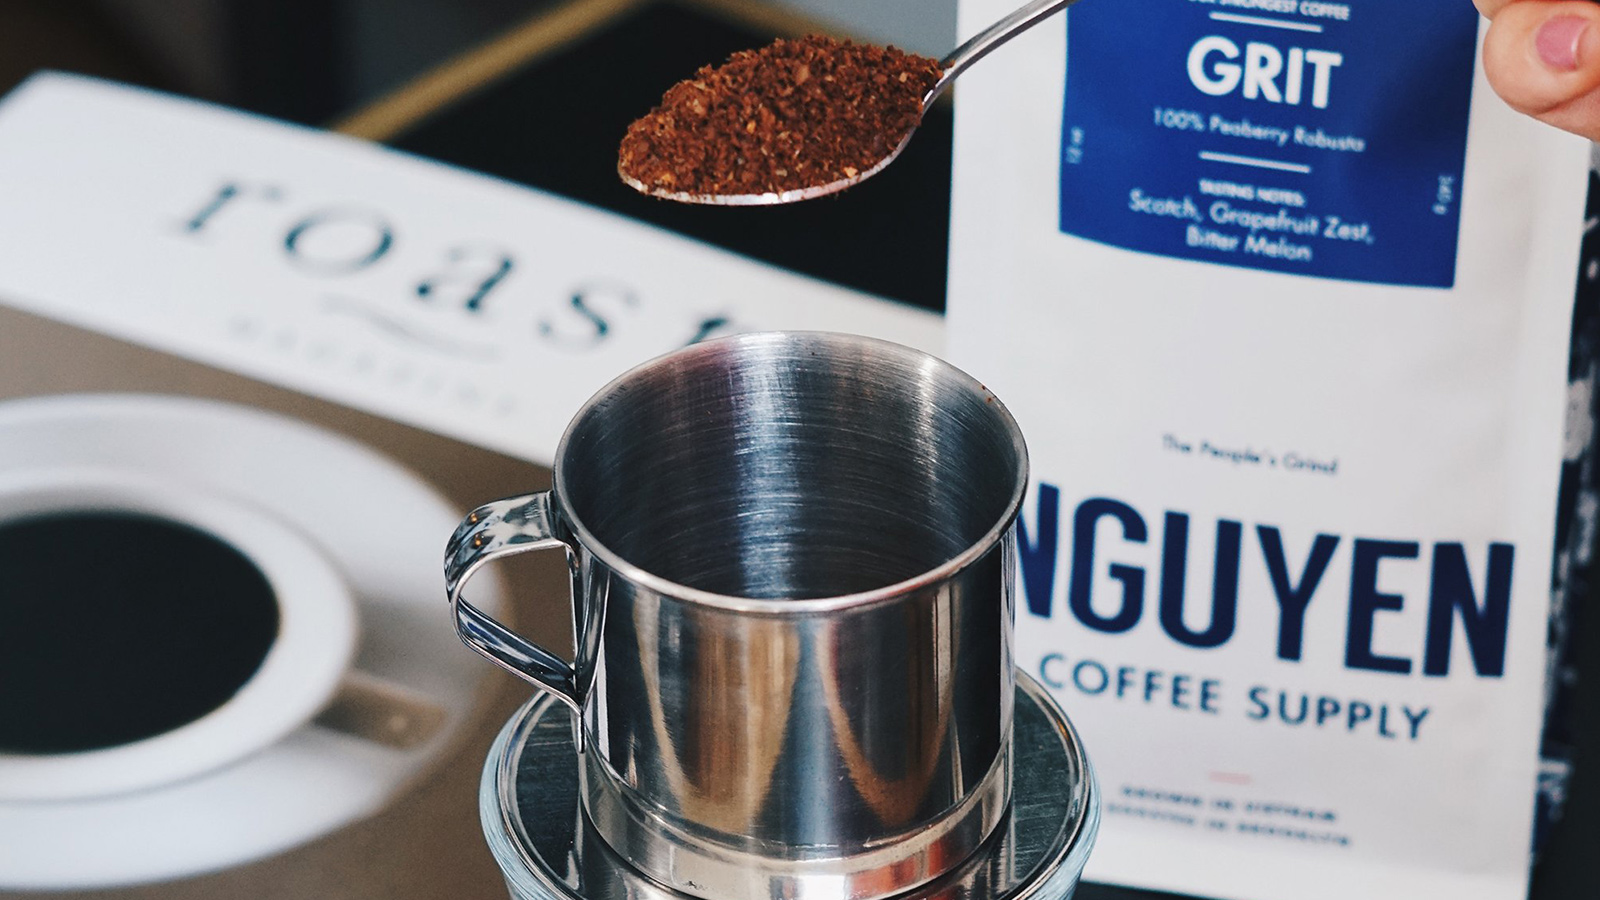 Ngyuen Grit Coffee